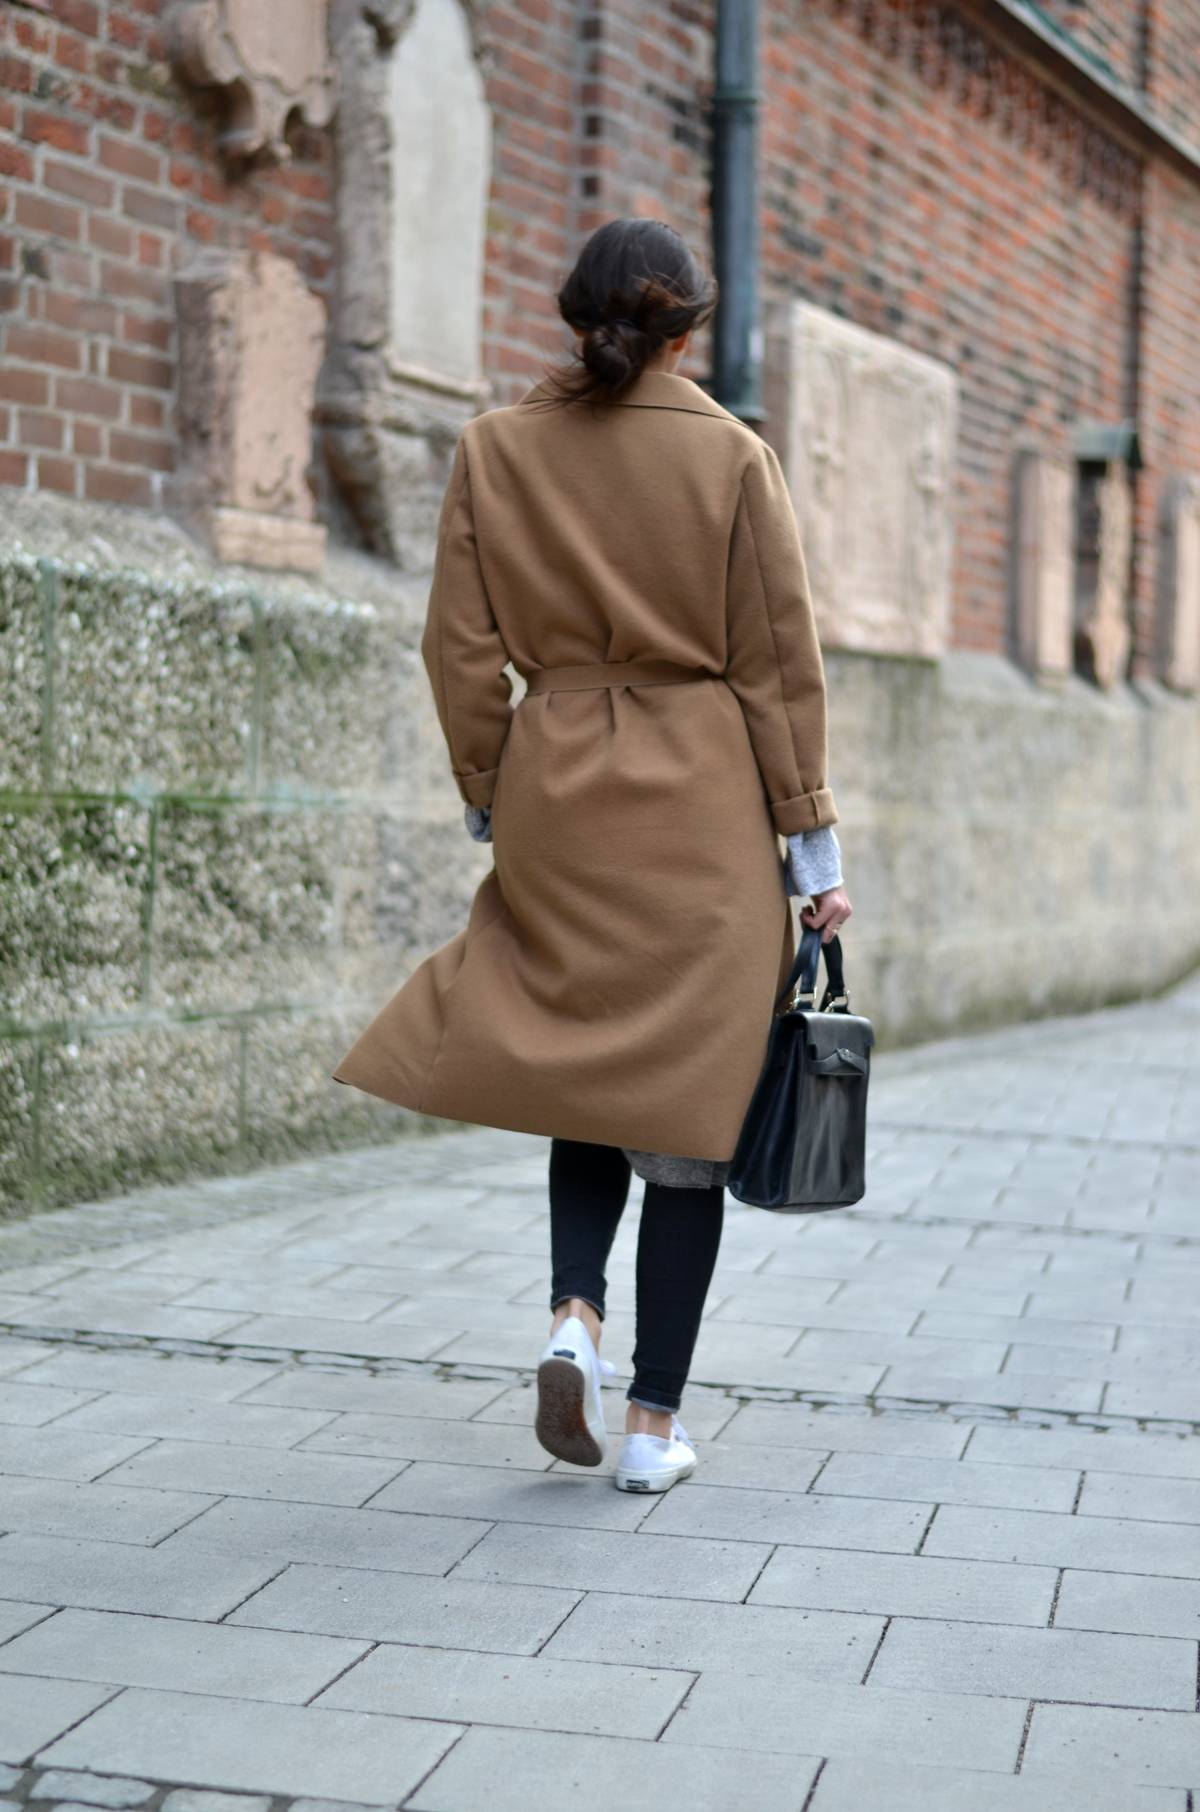 The Classic Camel Coat - Spring - Casual - Lookbook - Streetstyle - Munich - München - Fashionblog - Fashionblogger - Fashionista - Ripped Jeans - Calvin Klein Sunnies - Vintage Hermés - Supergas - Layering